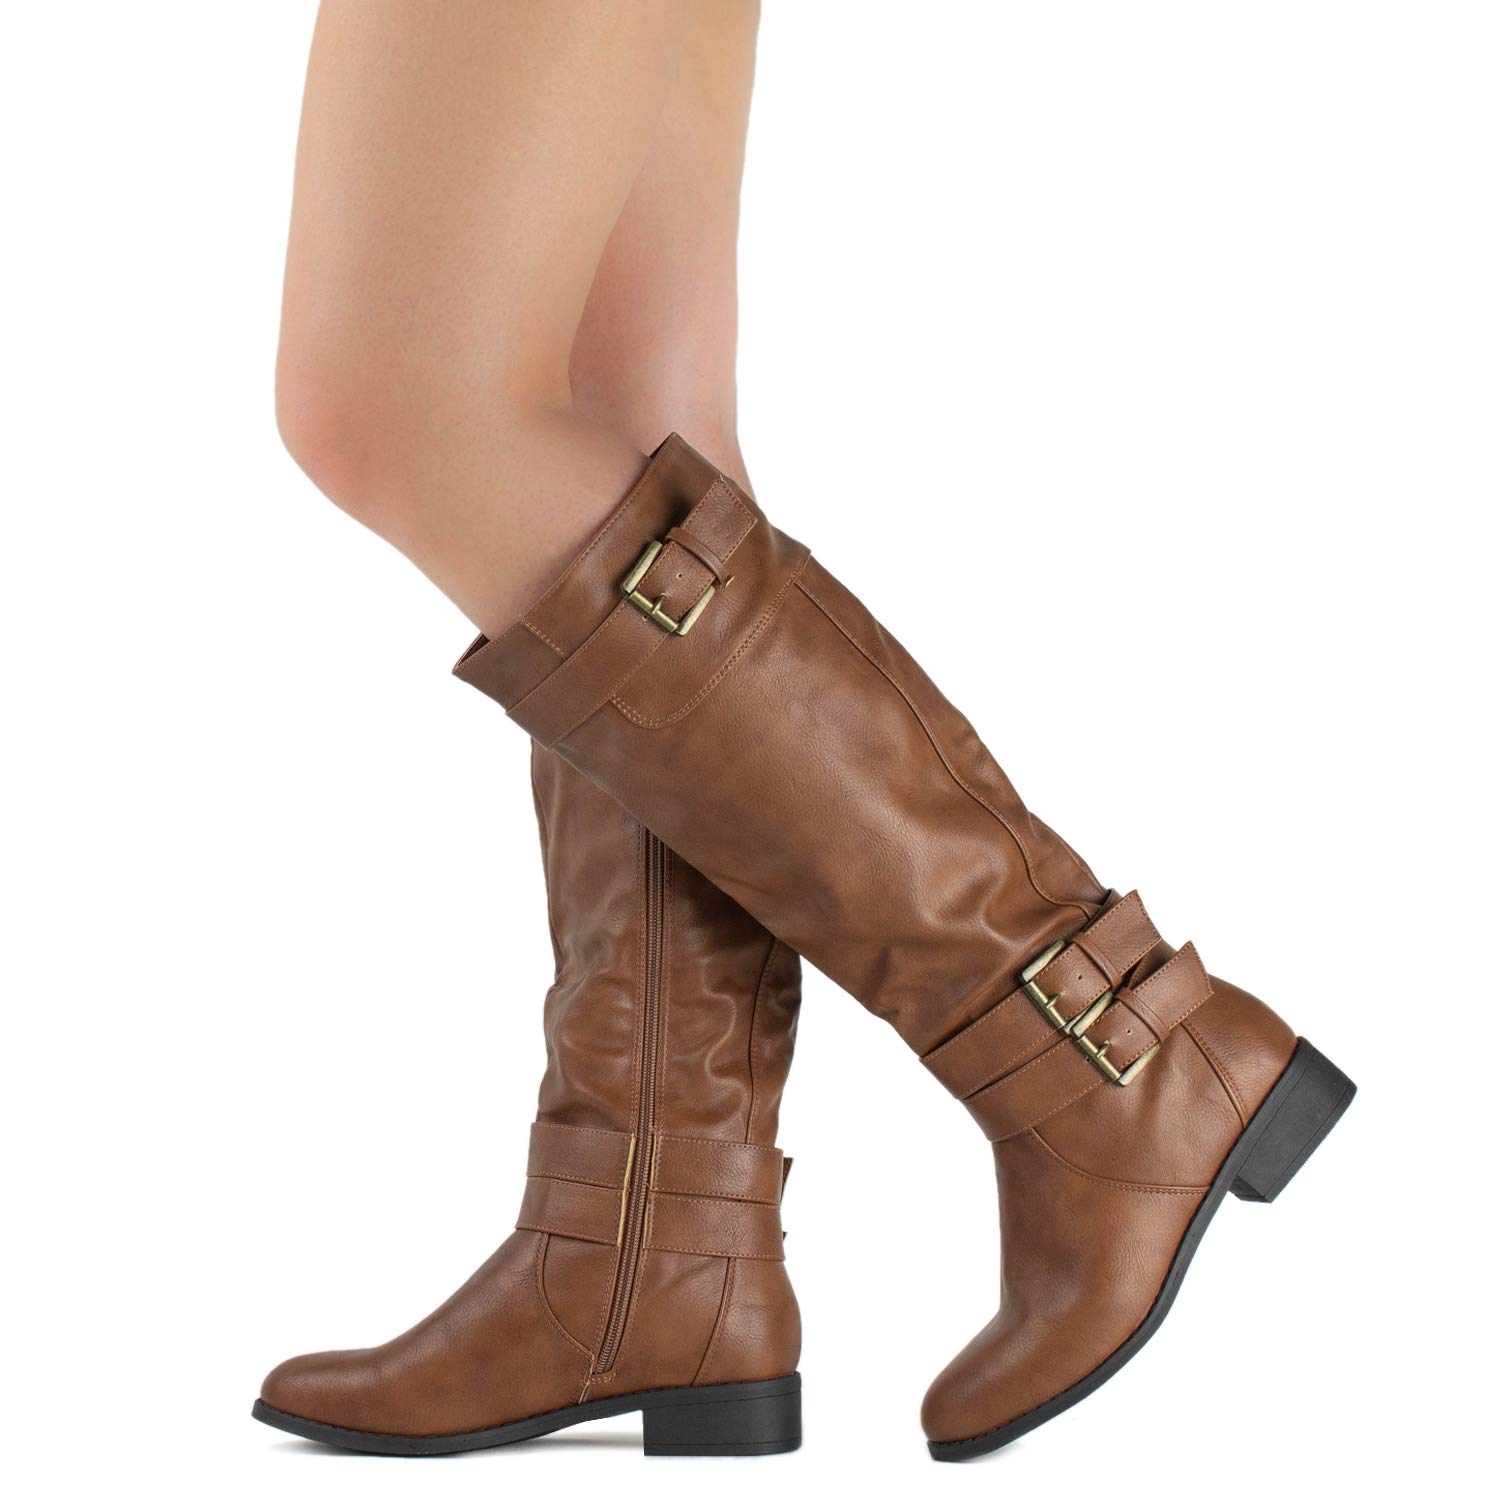 RF ROOM OF FASHION Lady's Buckle Knee High Riding Boots with Hidden Pocket TAN (7.5)